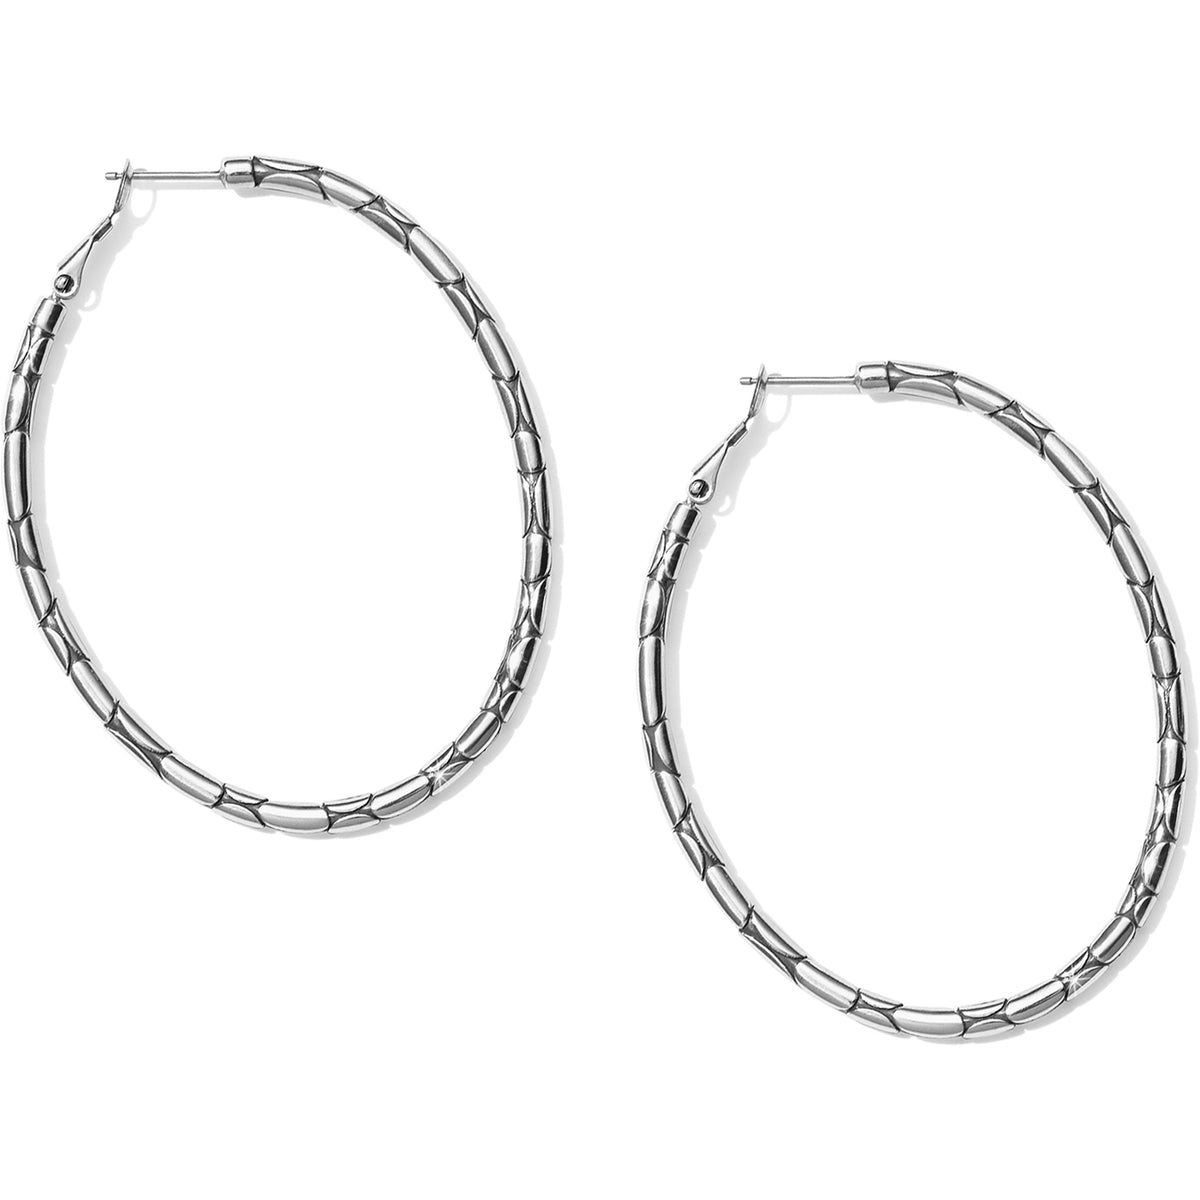 Brighton Pebble Large Oval Hoop Earrings